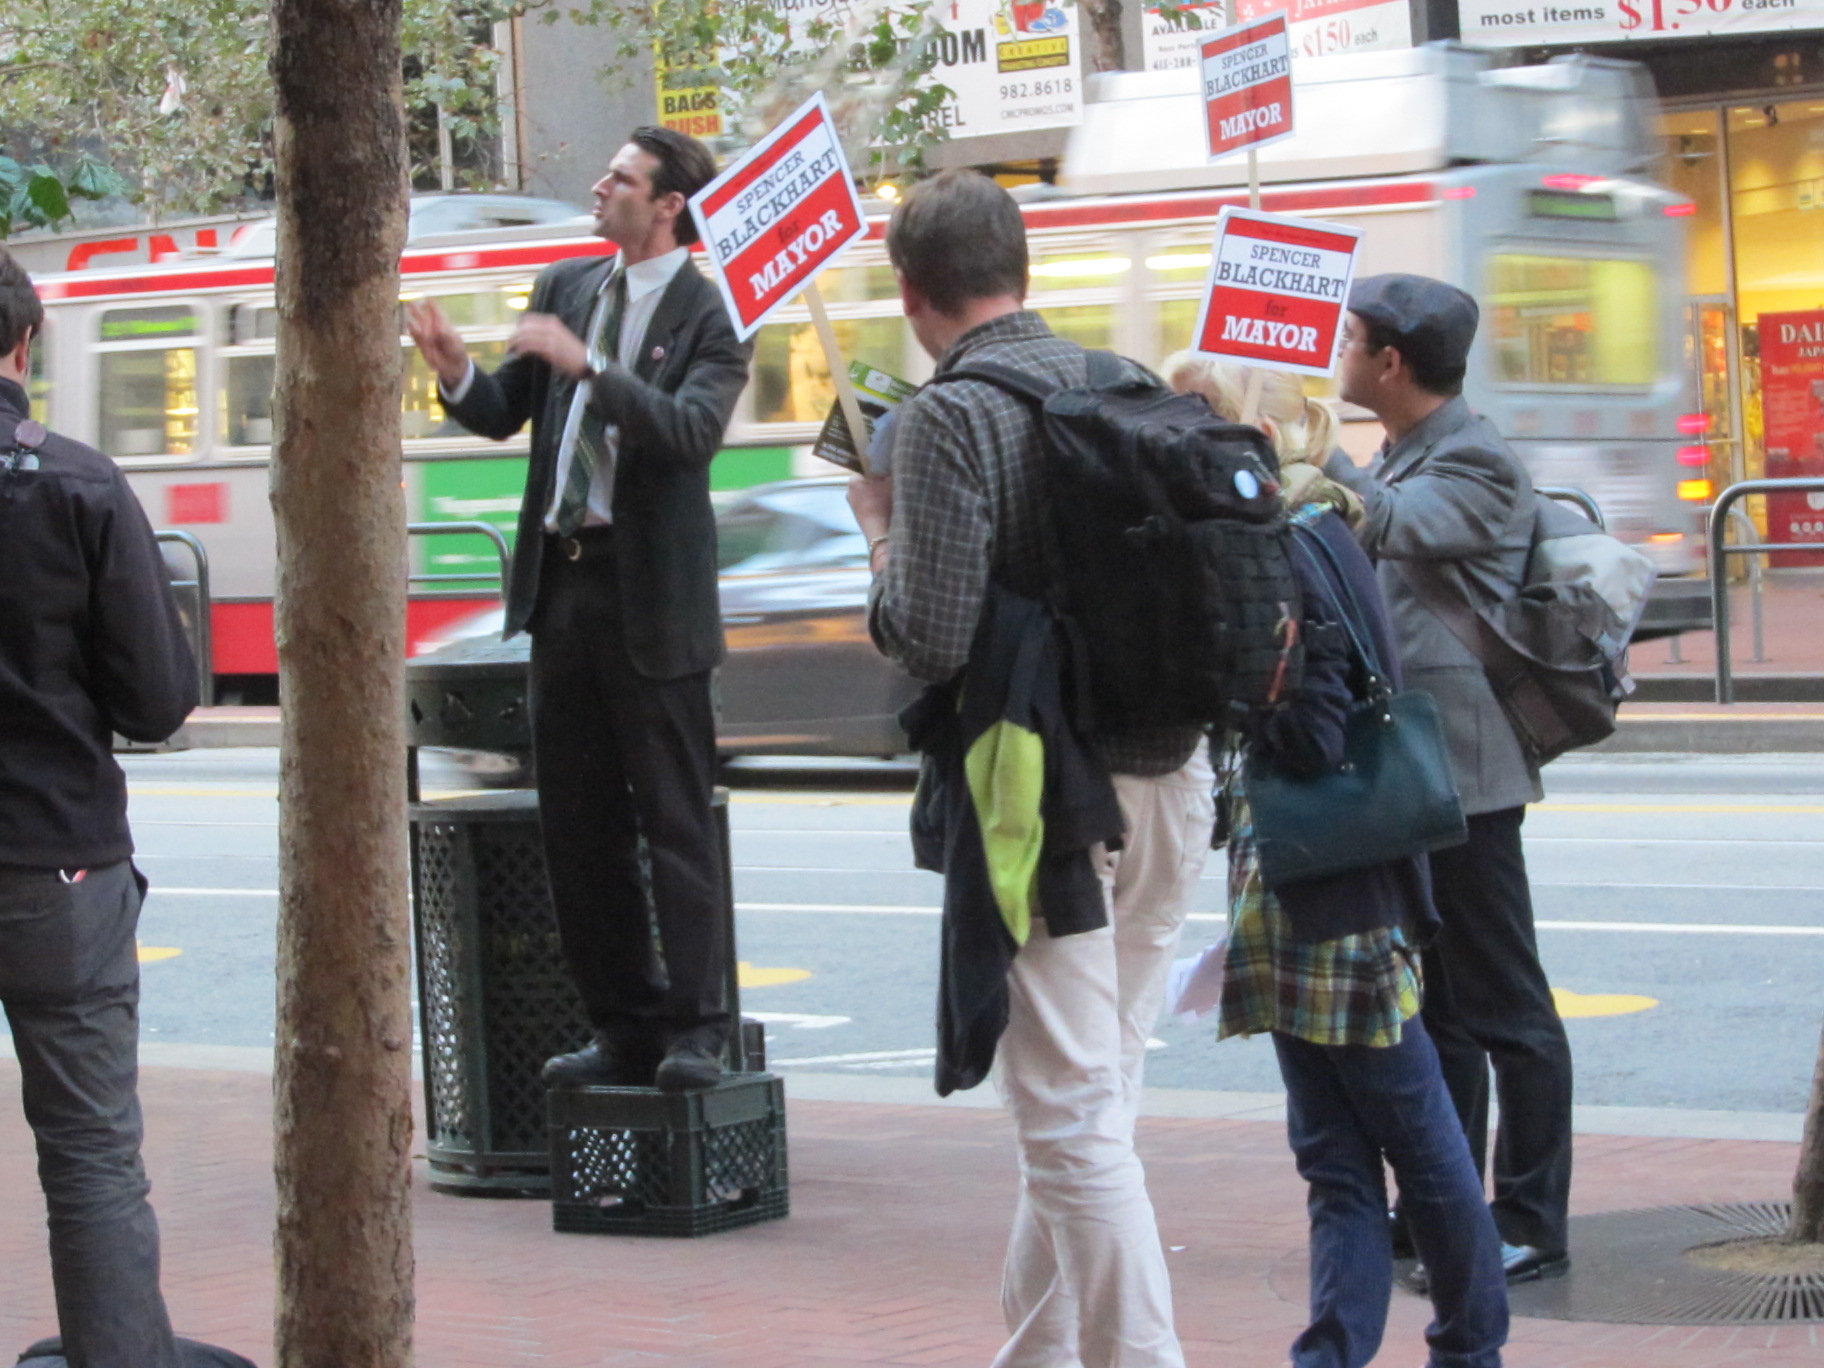 Spencer Blackhart performer in a dark suit and striped tie stands on a milk crate on a city sidewalk, as people carrying Spencer Blackhart for Mayor signs surround him.